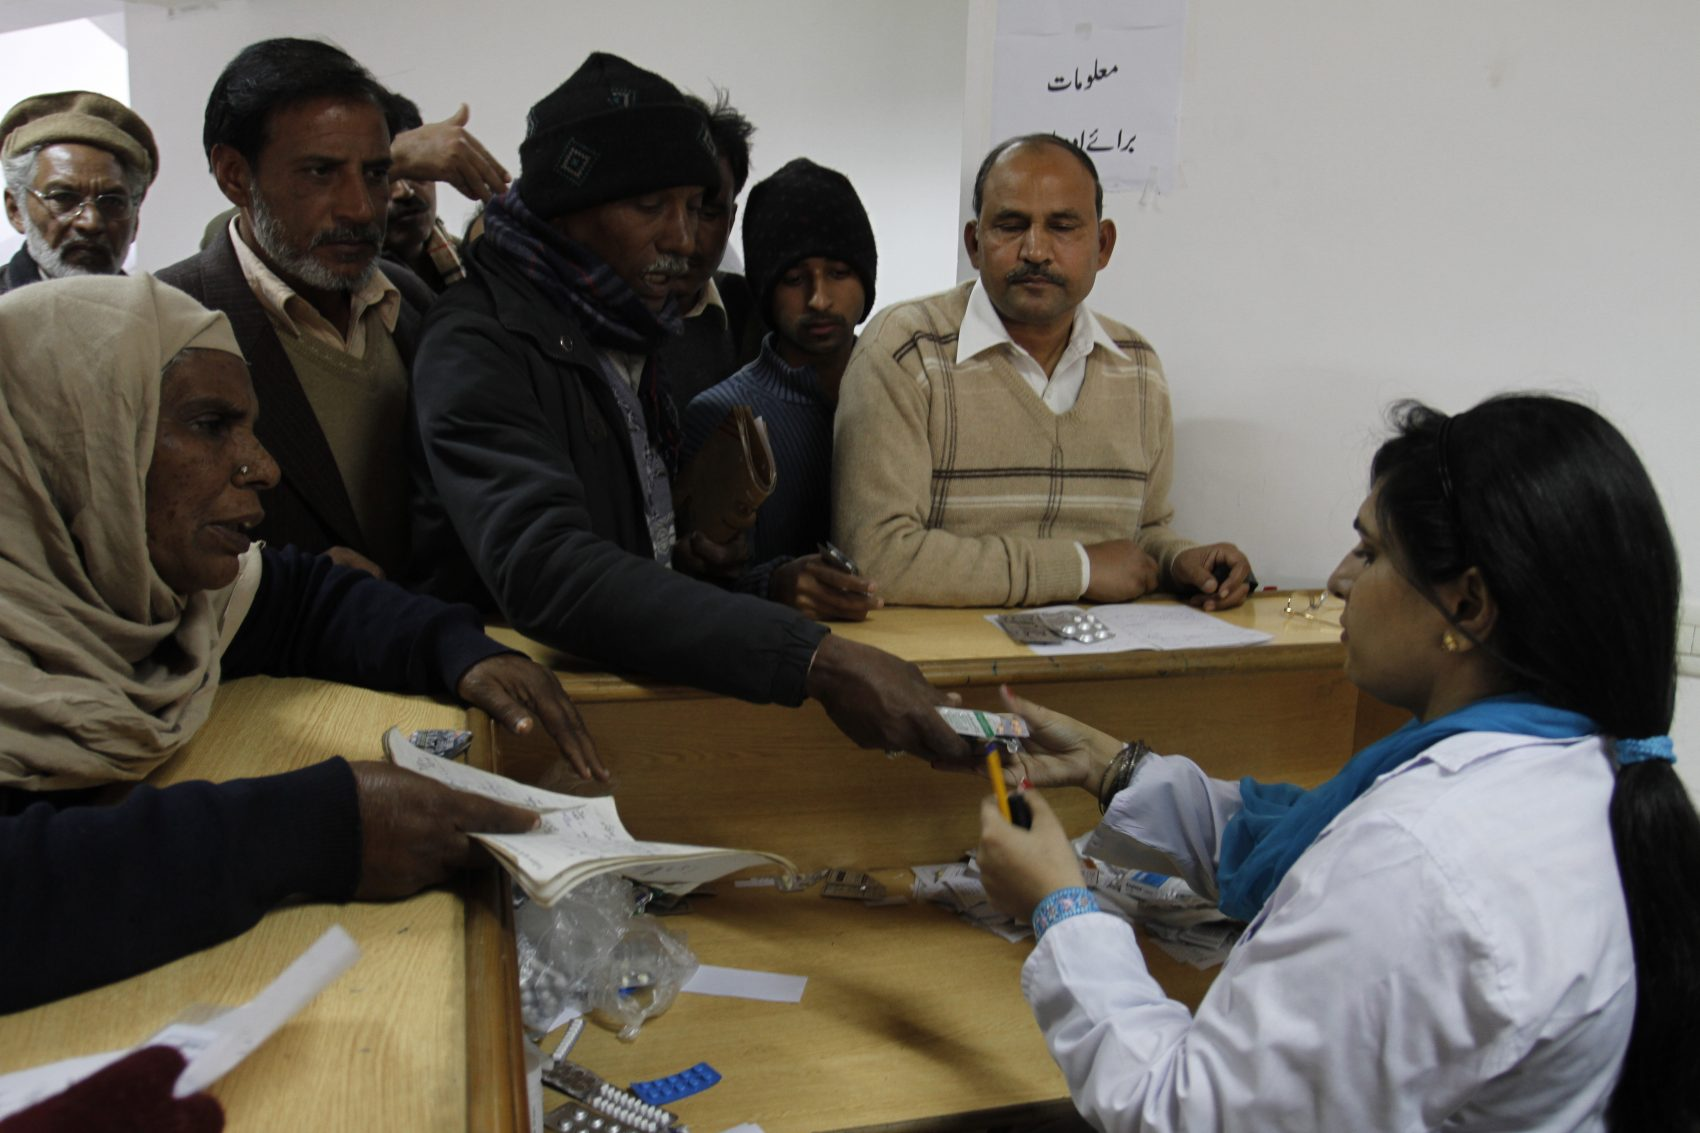 Pakistani family members of patients return medicines to a hospital in Lahore, Pakistan on Jan 23, 2012. Bad drugs were blamed for killing dozens. (K.M.Chaudary/AP)